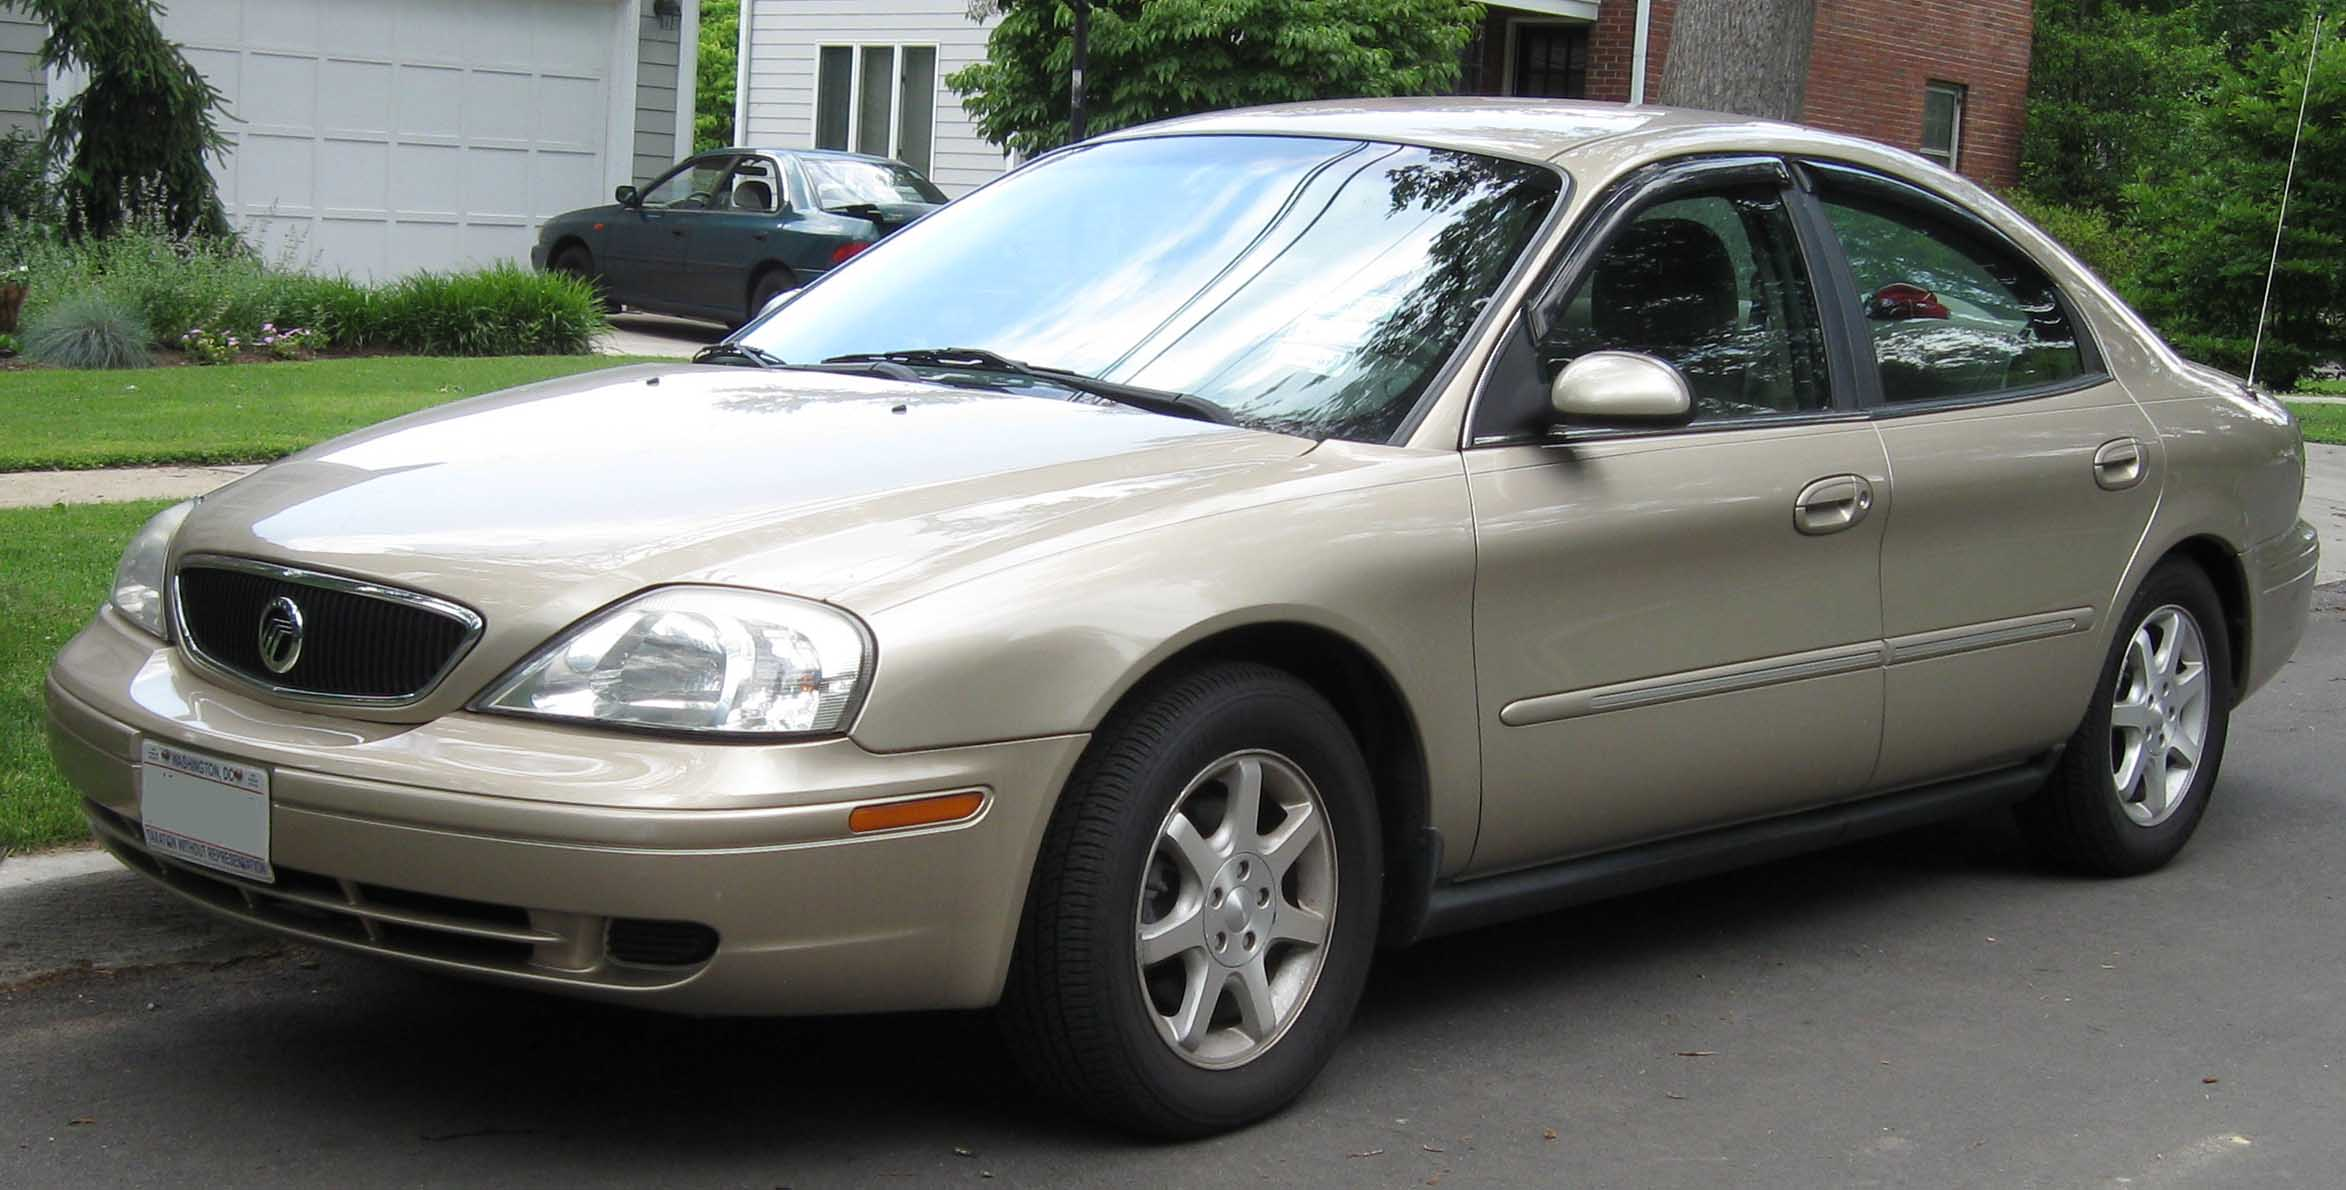 mercury sable 2000 pictures #1